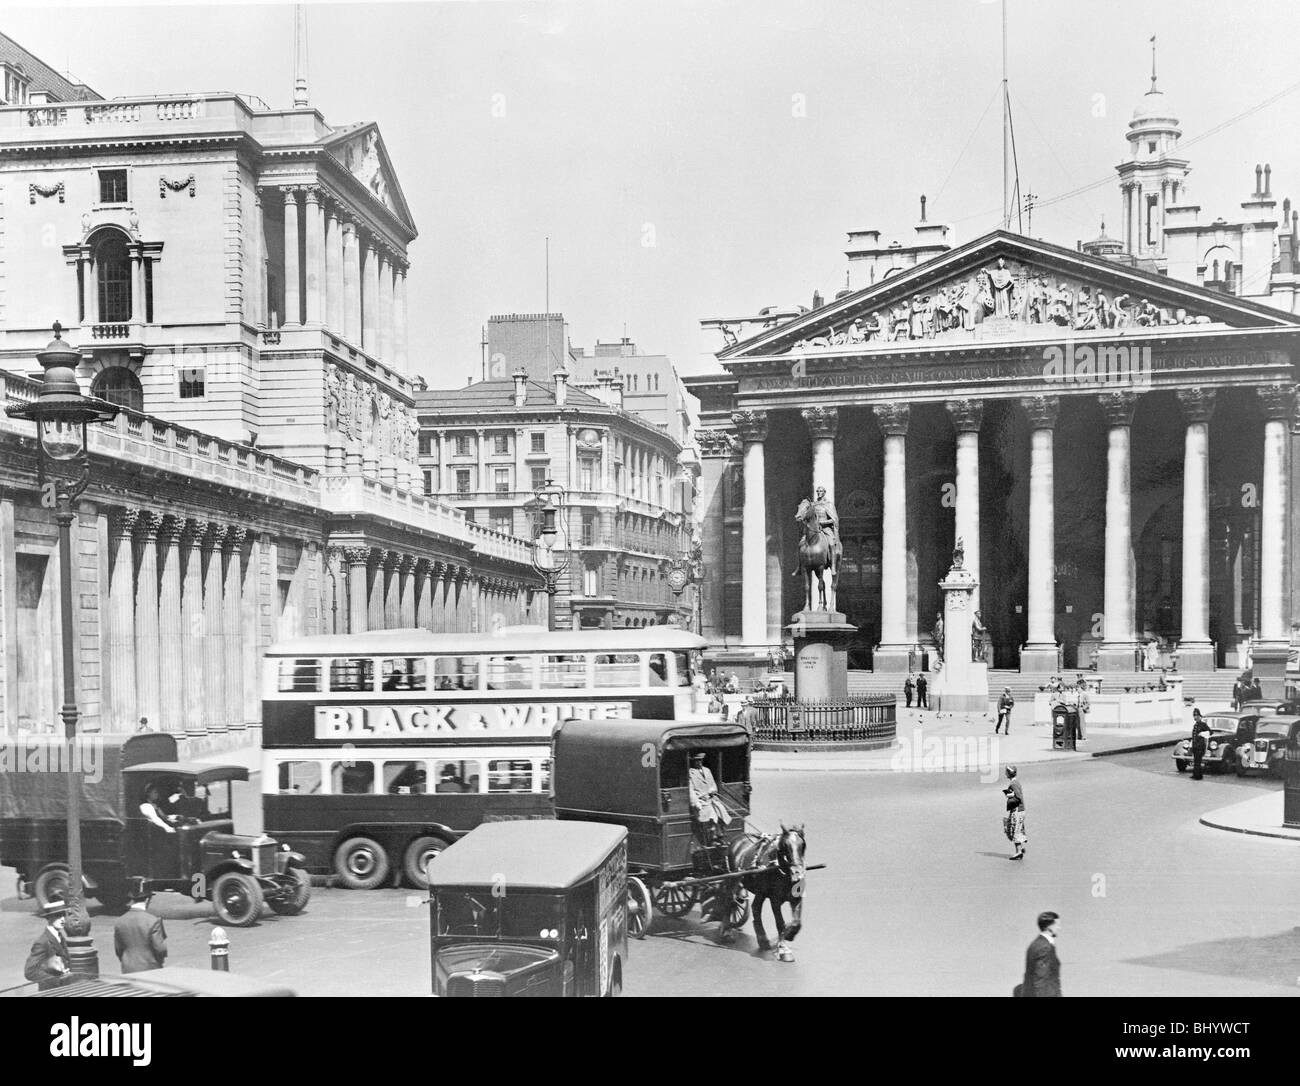 Bank of England and Royal Exchange, City of London. Artist: John H Stone Stock Photo